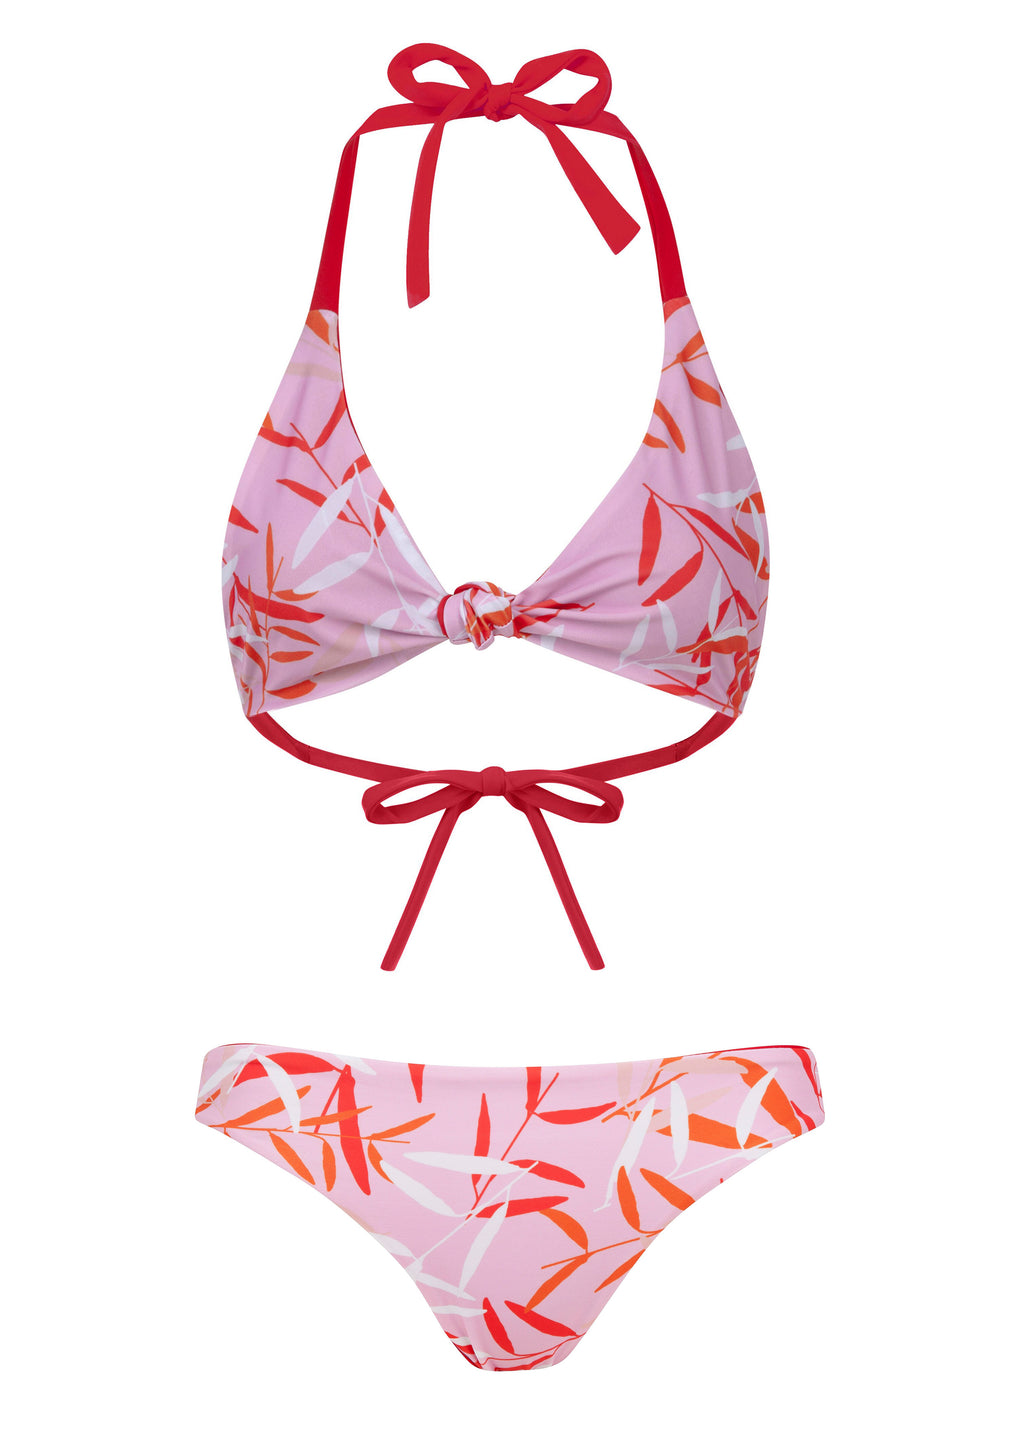 Tucca Swim Full Brief Reversible Bikini Set